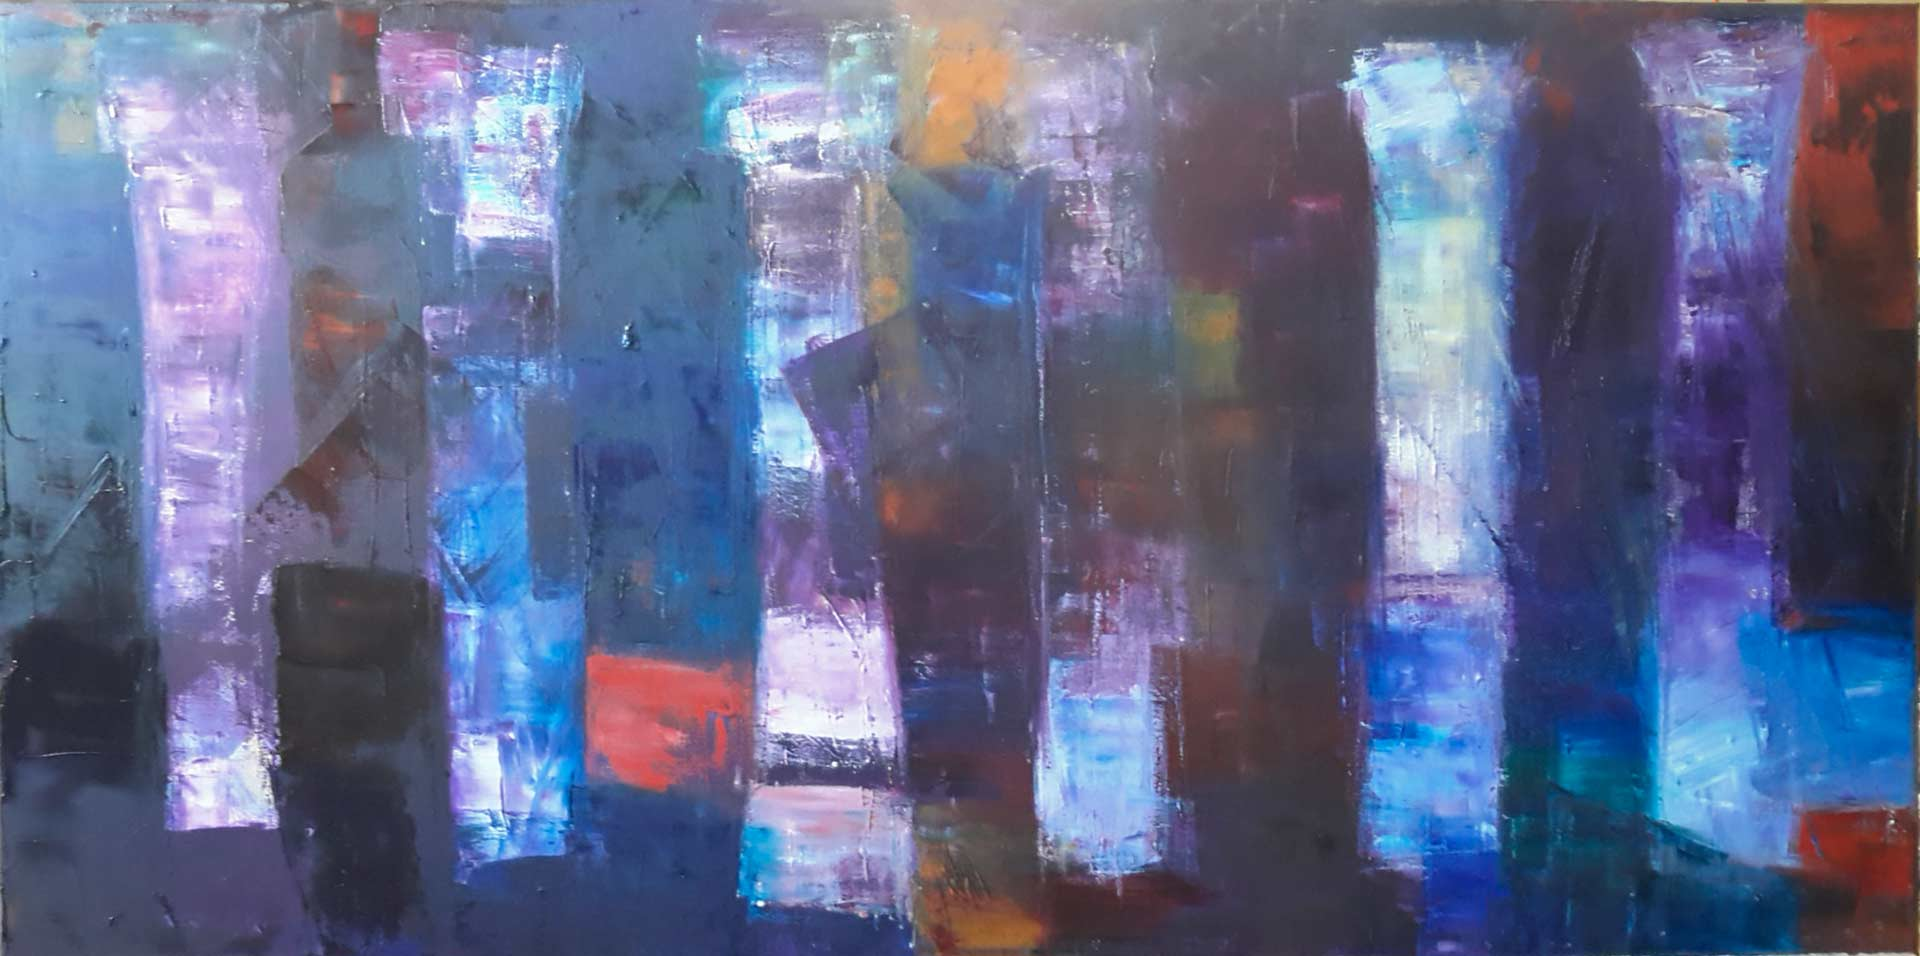 The Great Colonnade - Oil on canvas 120x60 cm